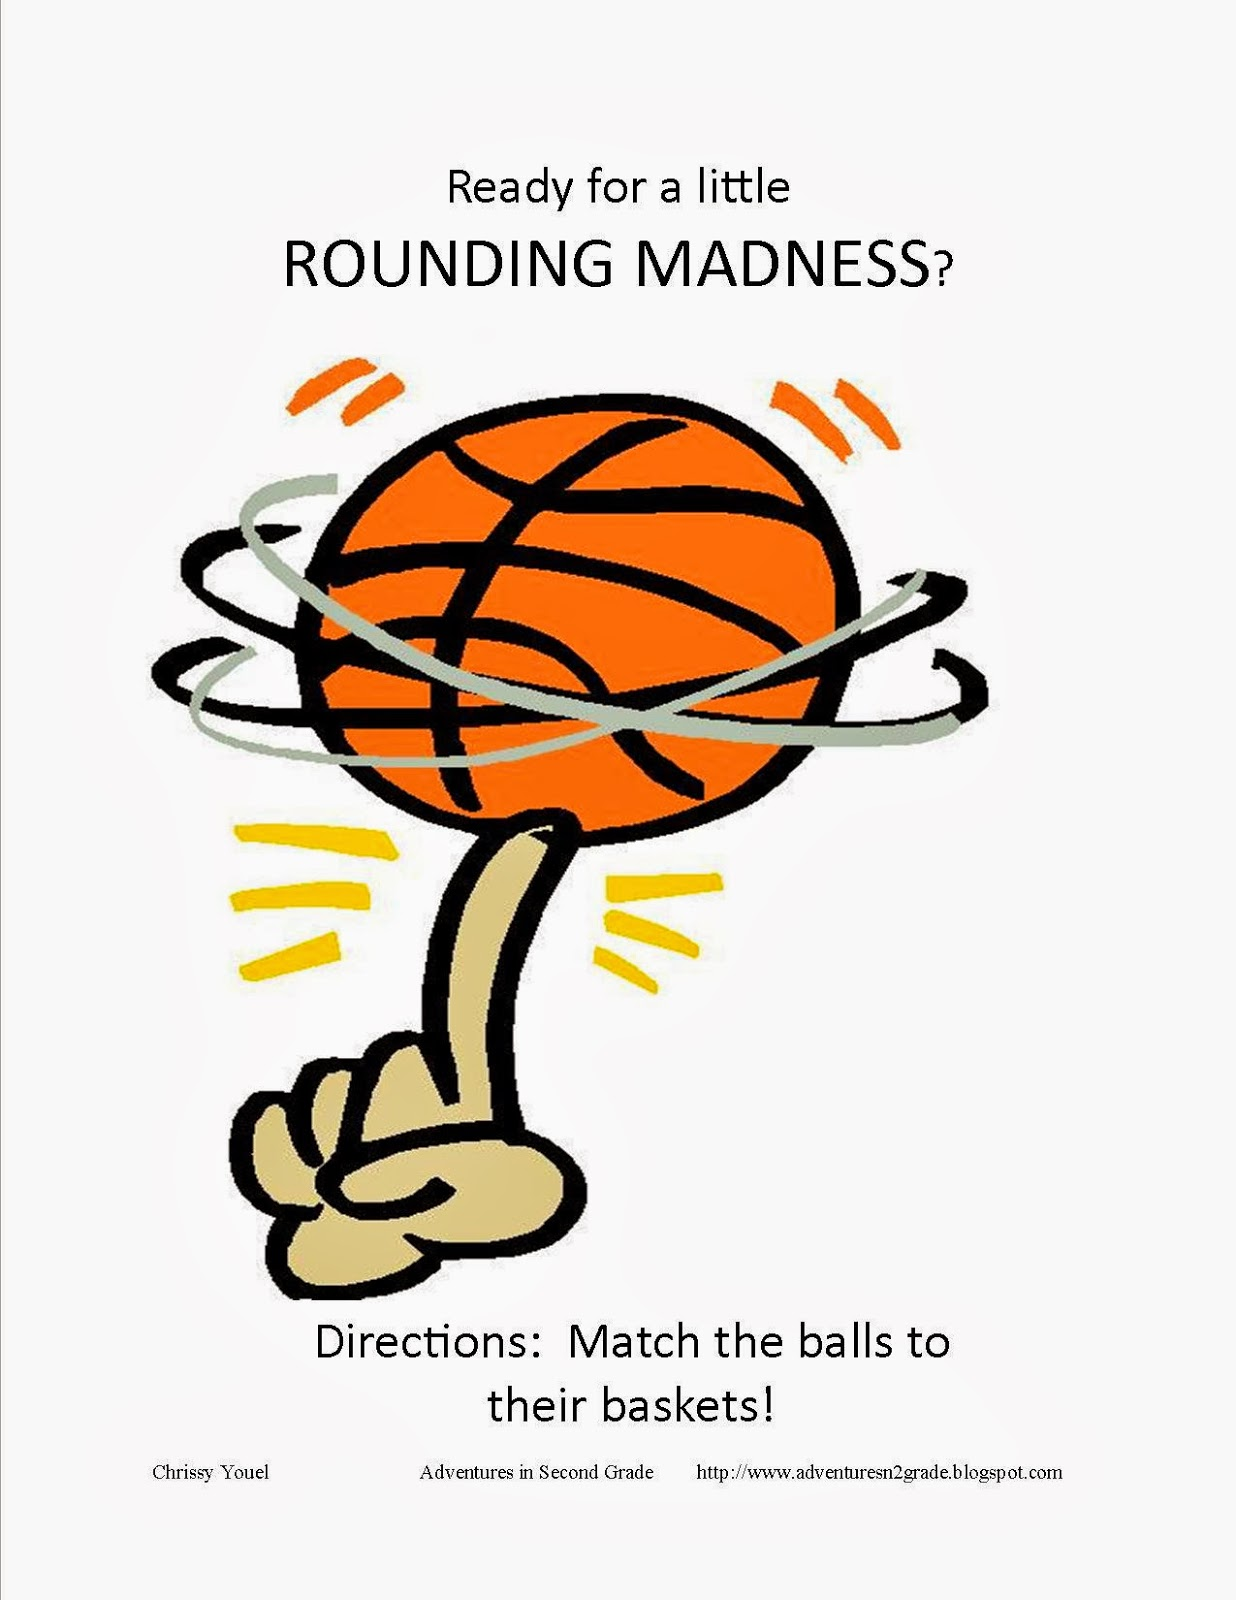 http://www.teacherspayteachers.com/Product/A-Little-March-Rounding-Madness-215265